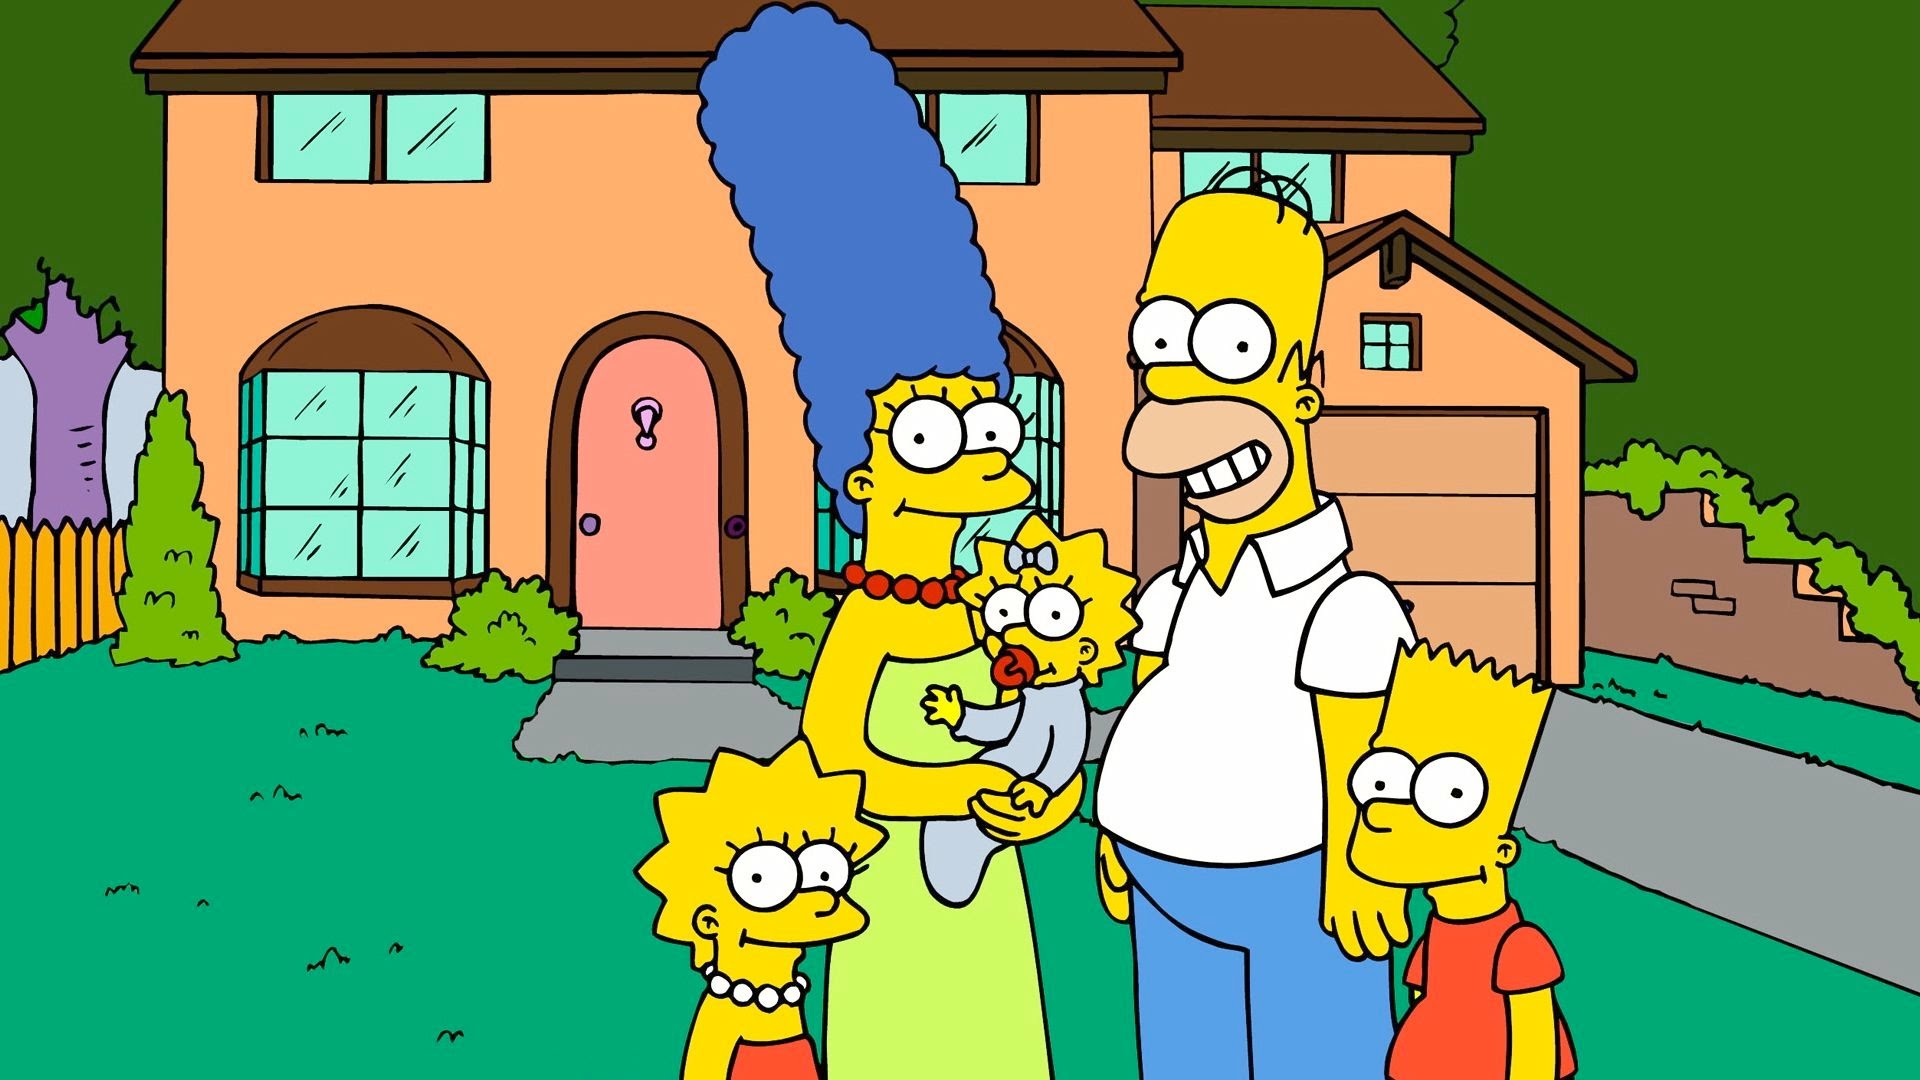 http://laughingsquid.com/wp-content/uploads/2013/10/10-facts-about-the-simpsons-that-you-may-not-have-known.jpg